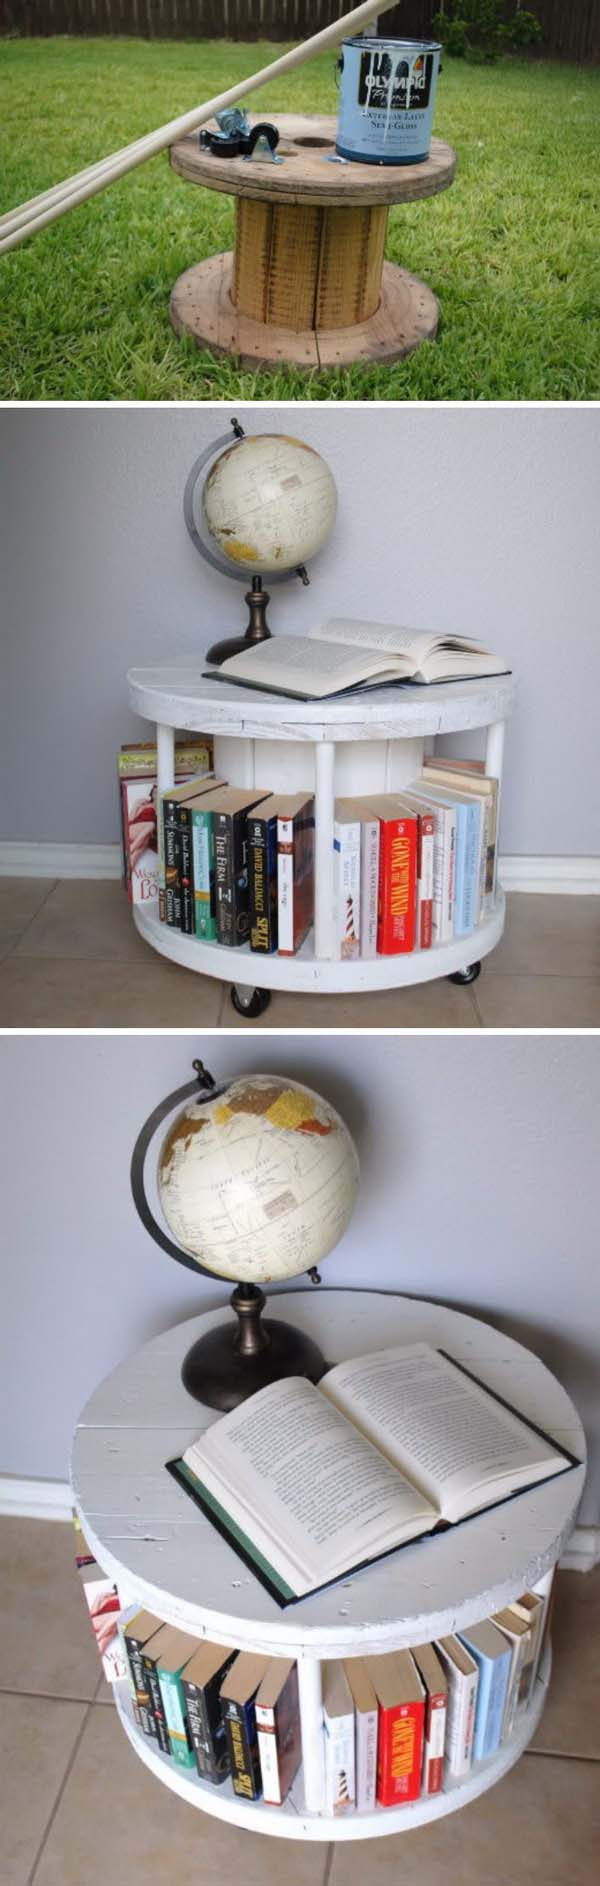 DIY Spool Makeover #furniture #makeover #diy #decorhomeideas